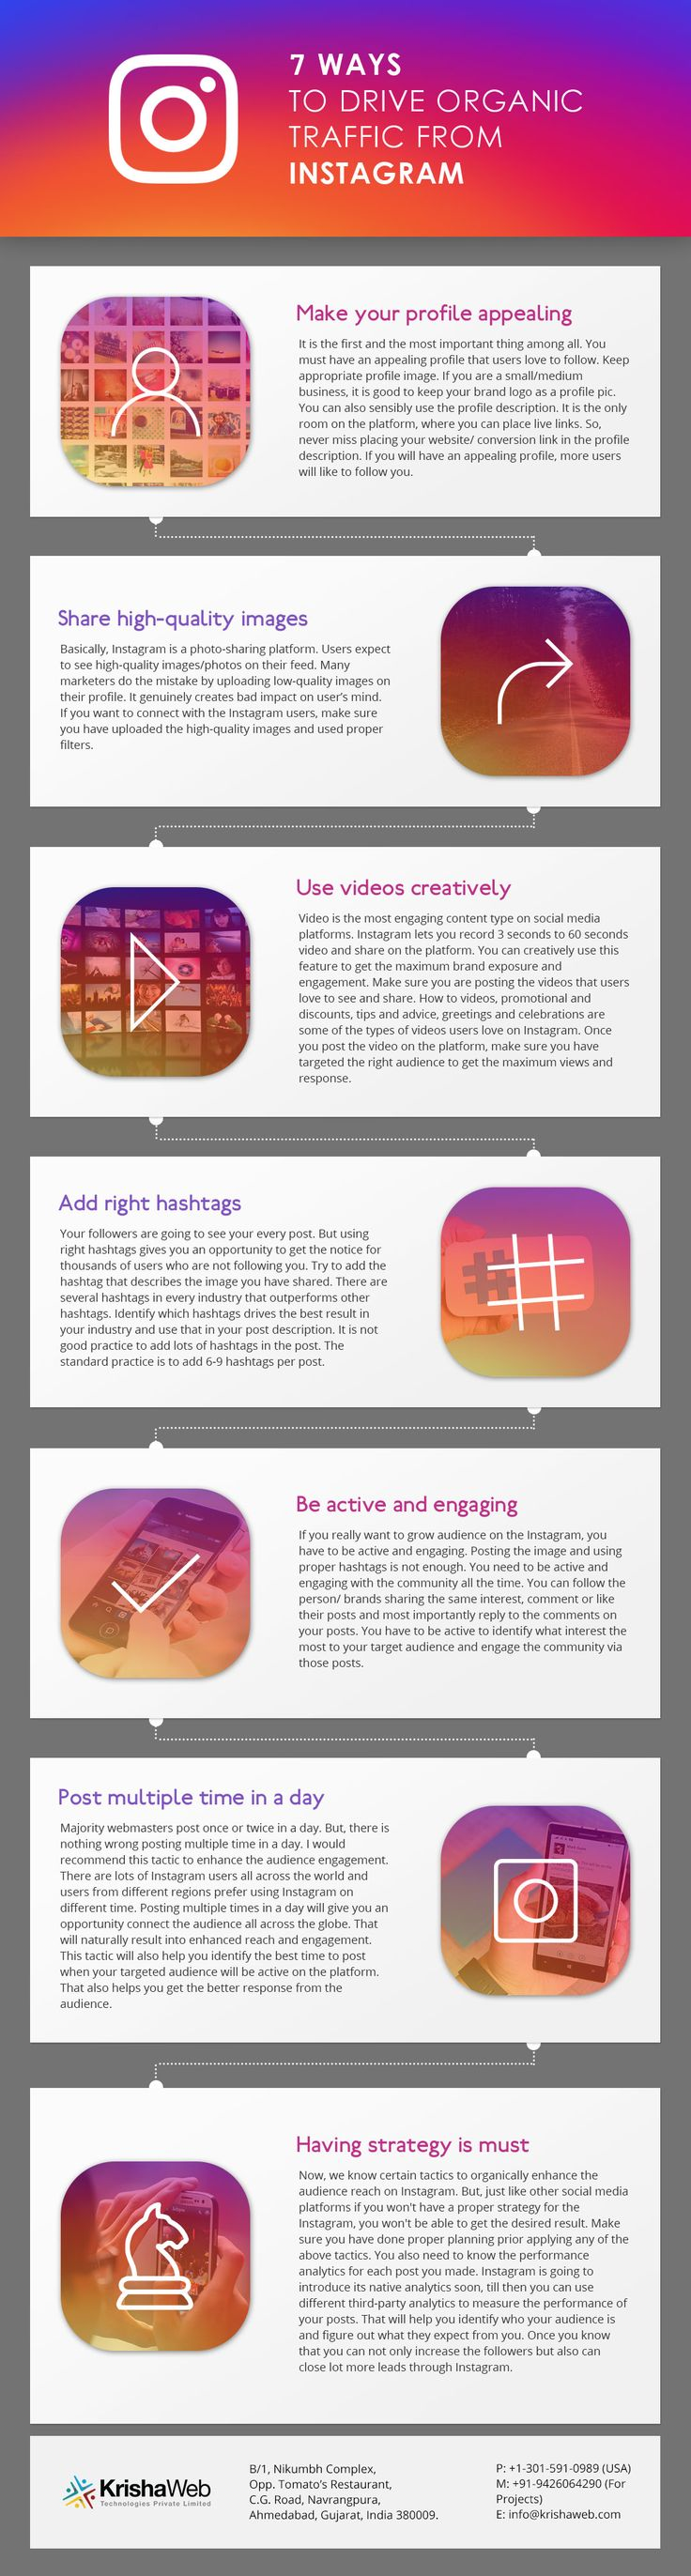 7 Ways to drive organic traffic from Instagram. Social media marketing infographic.